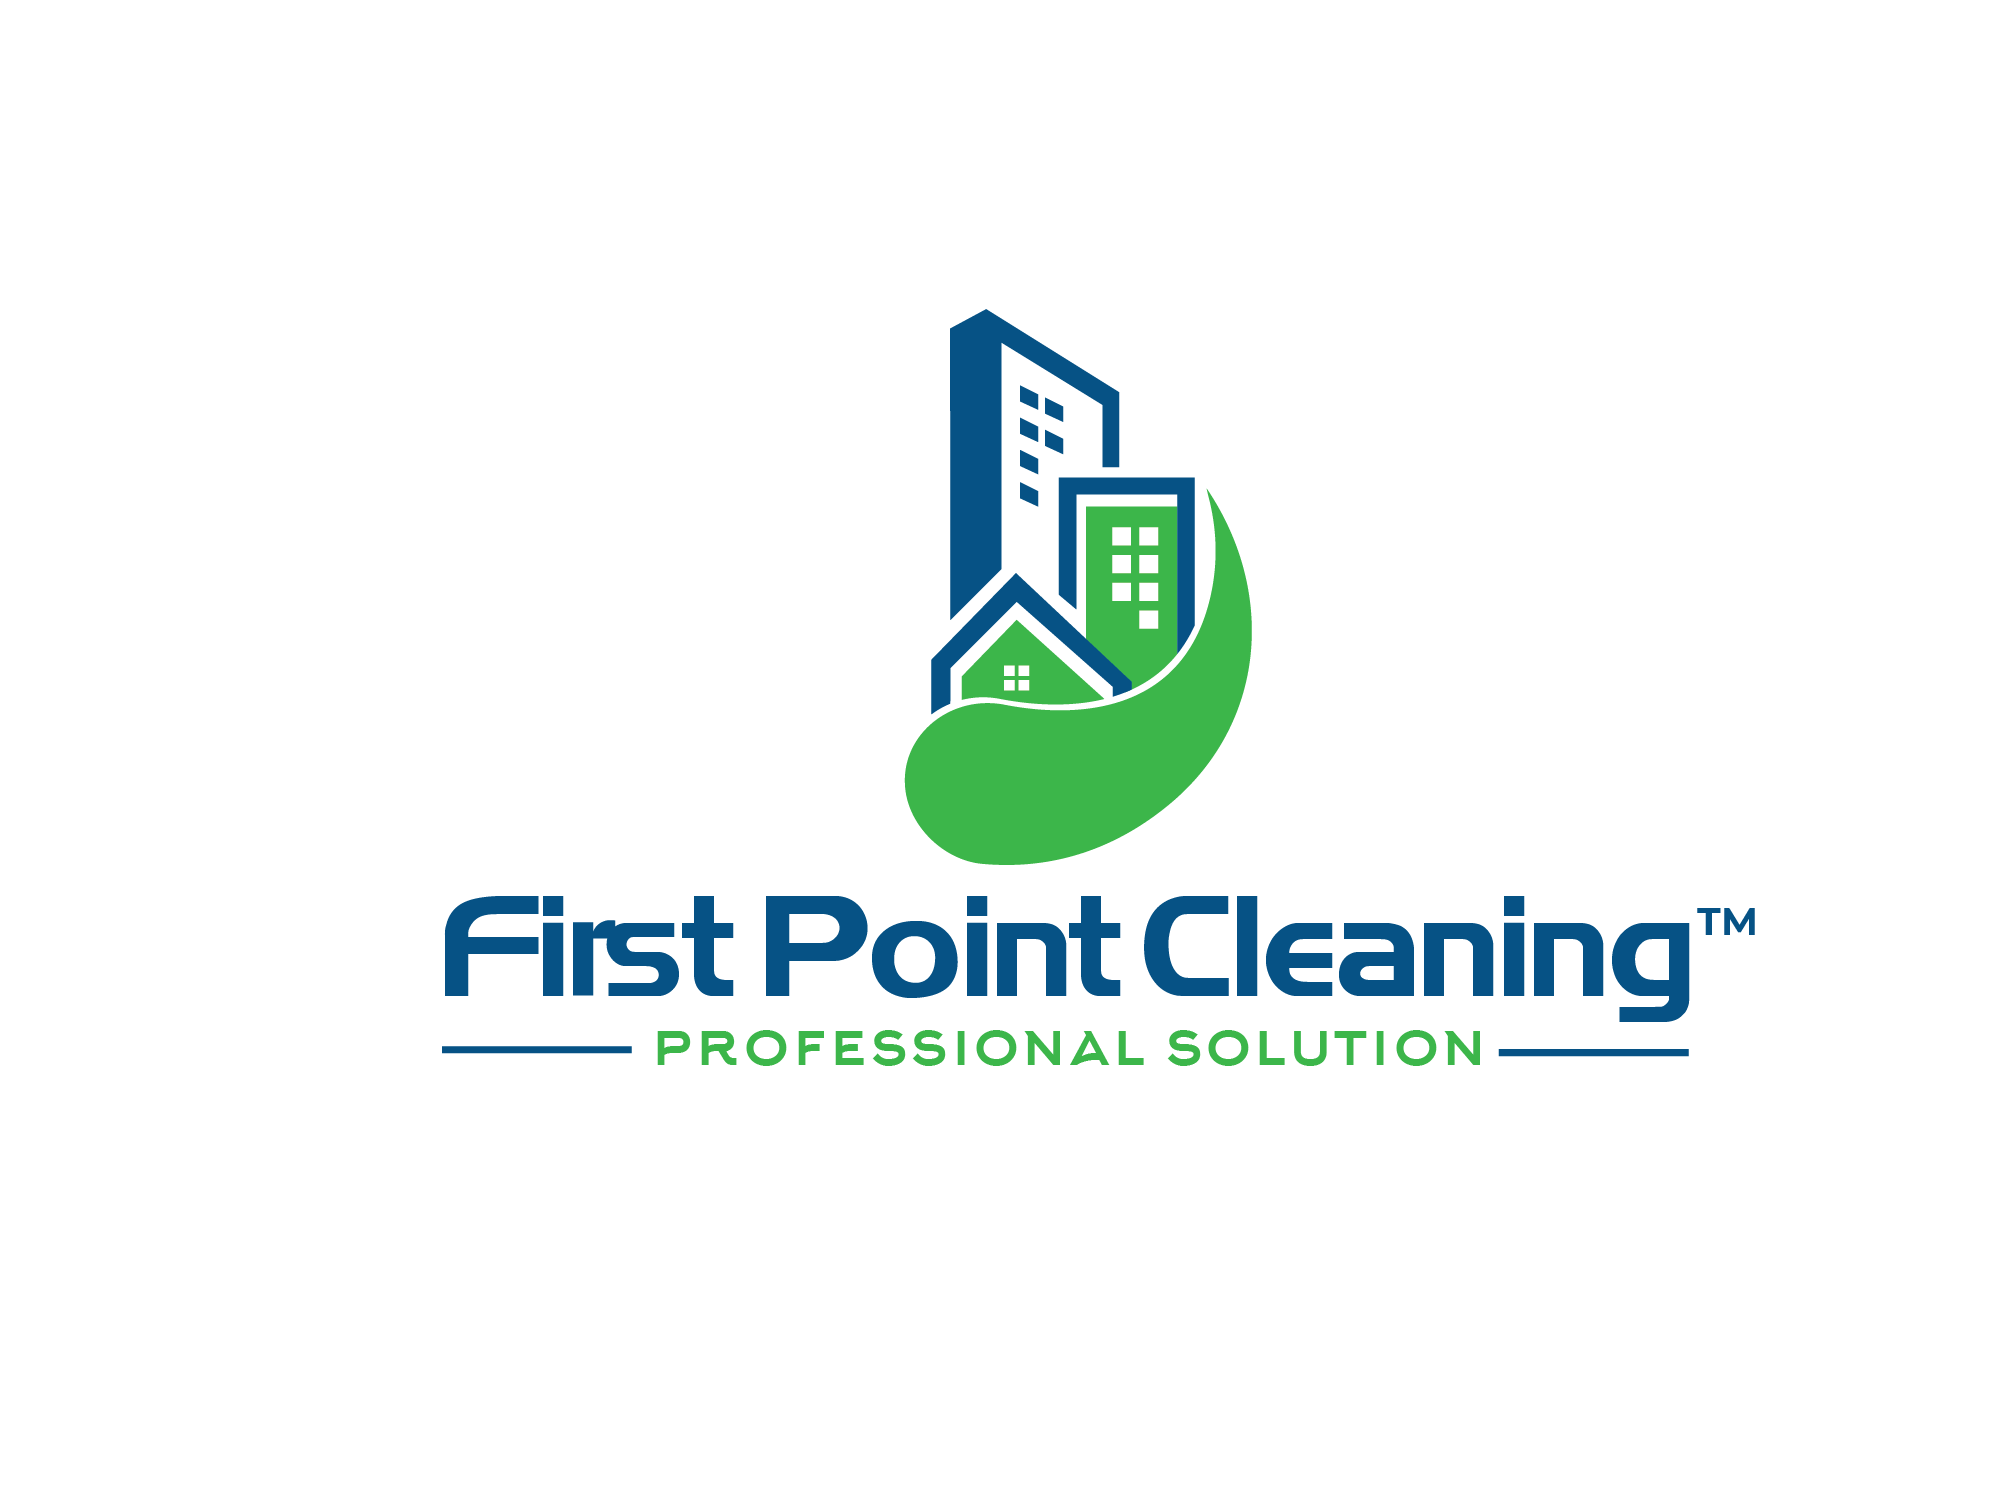 First Point Cleaning and Maintenance Ltd